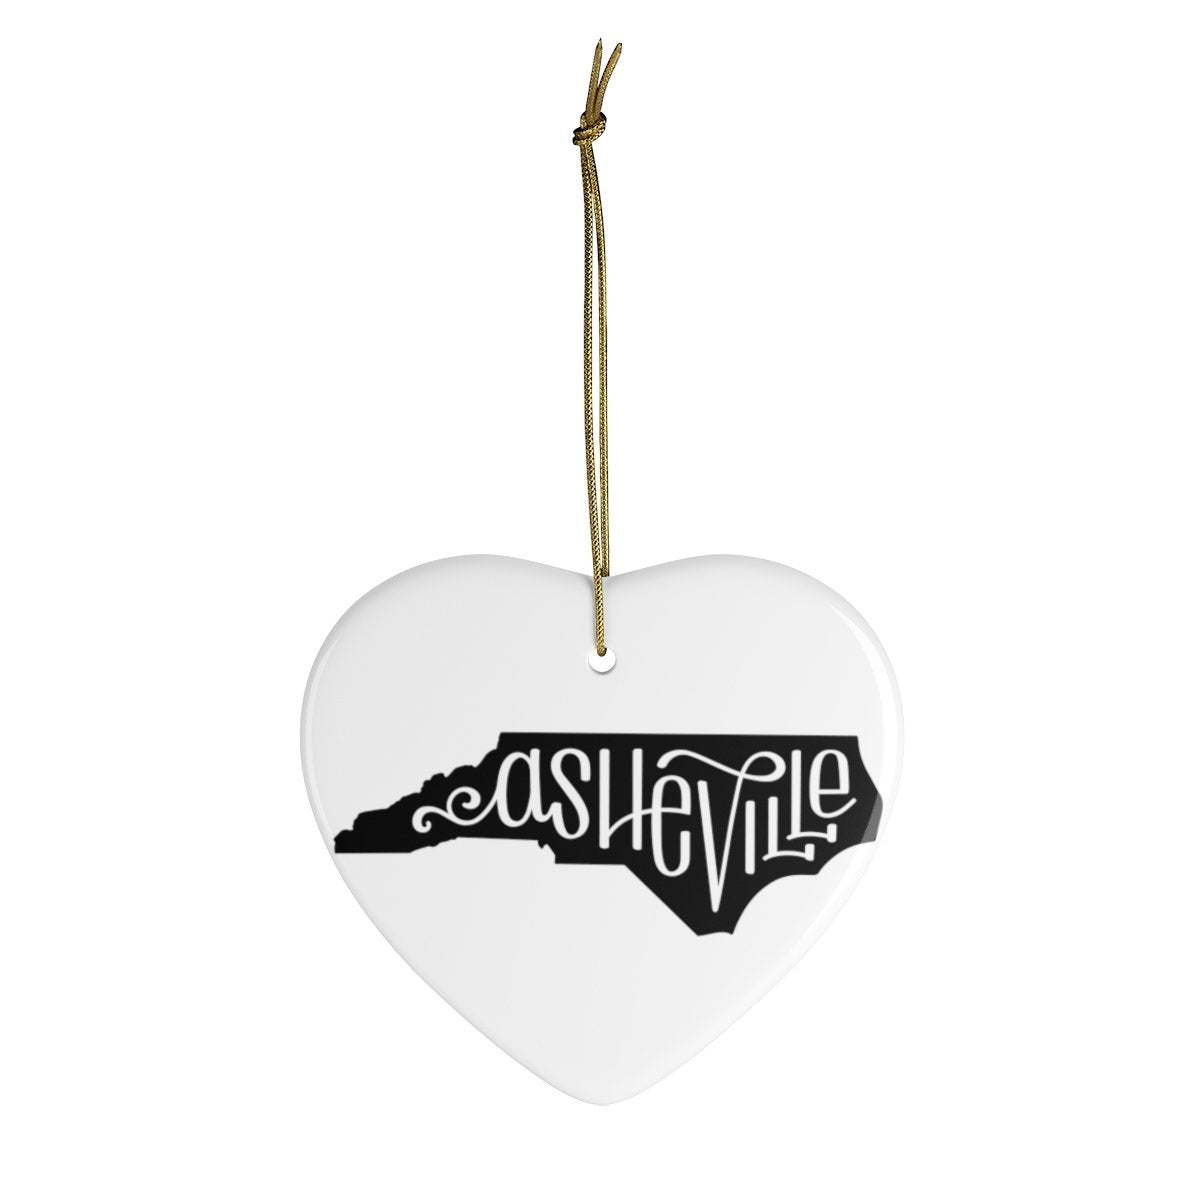 Leanne & Co. Home Decor Heart / One Size Asheville, NC Ceramic Heart Ornament